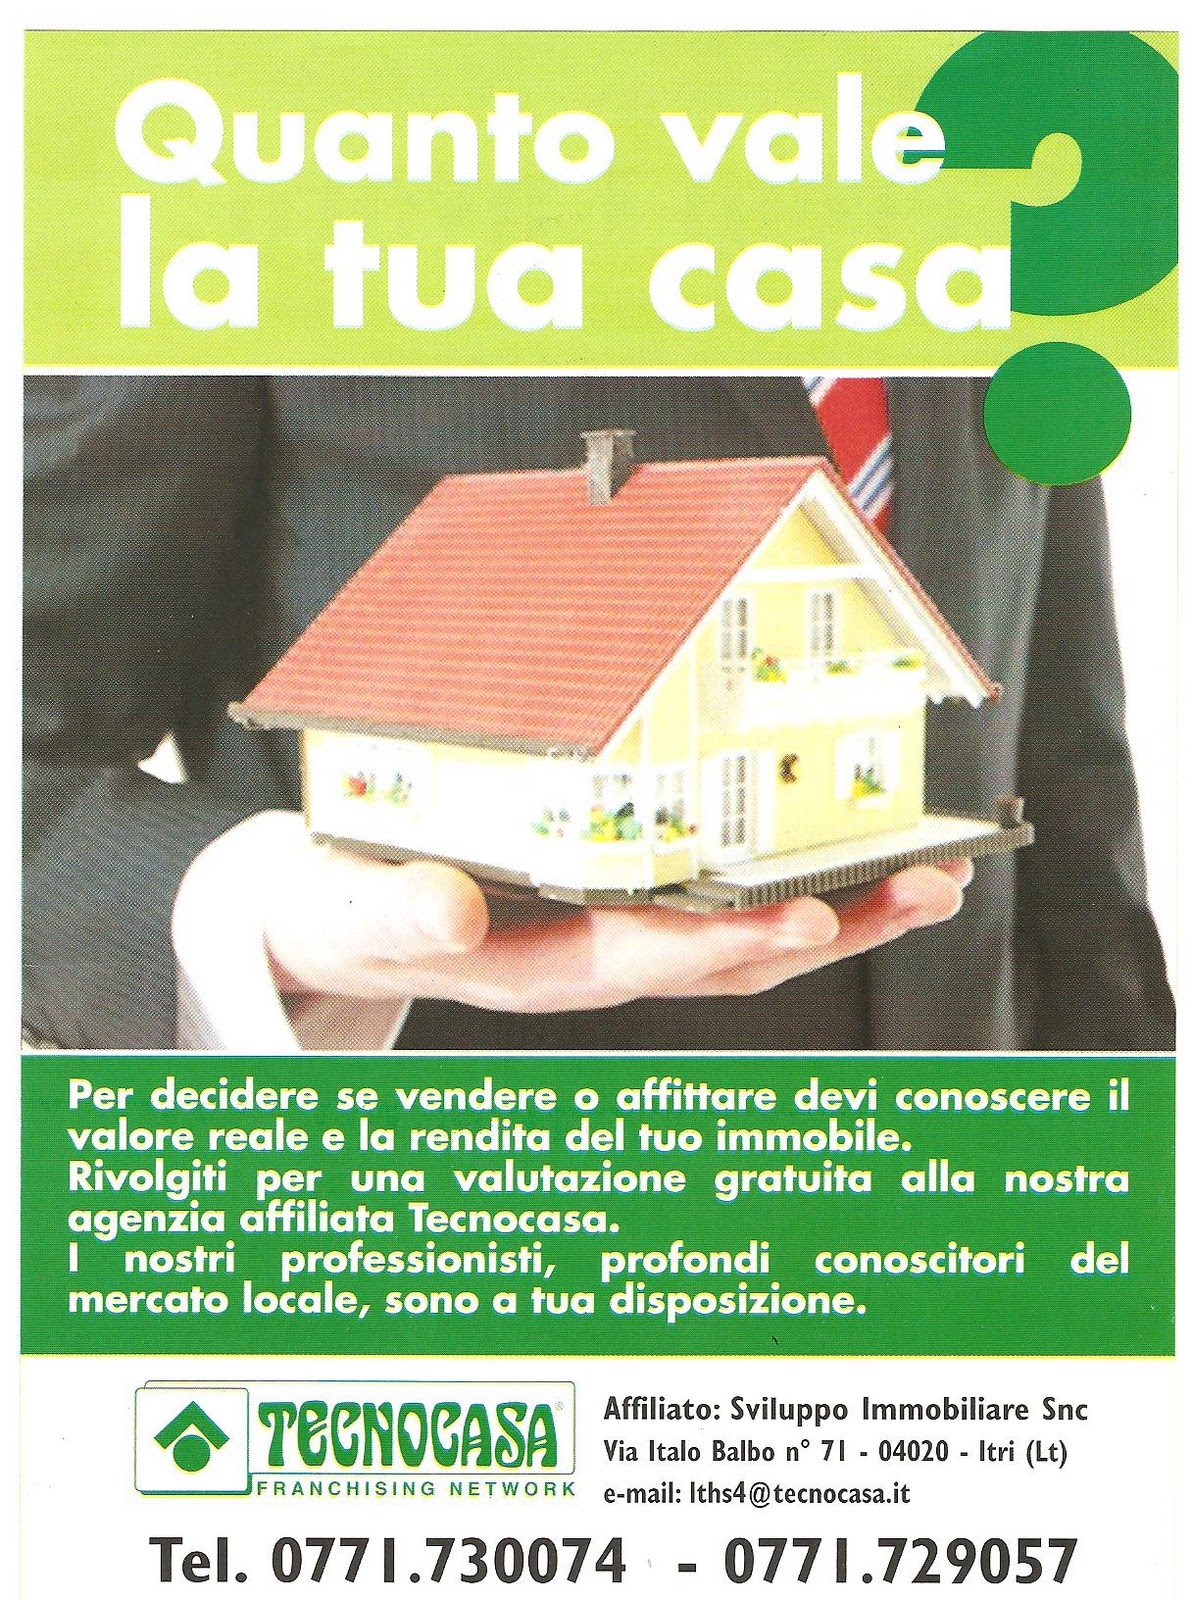 Tecnocasa affiliato itri sperlonga for Virtuale costruisci la tua casa